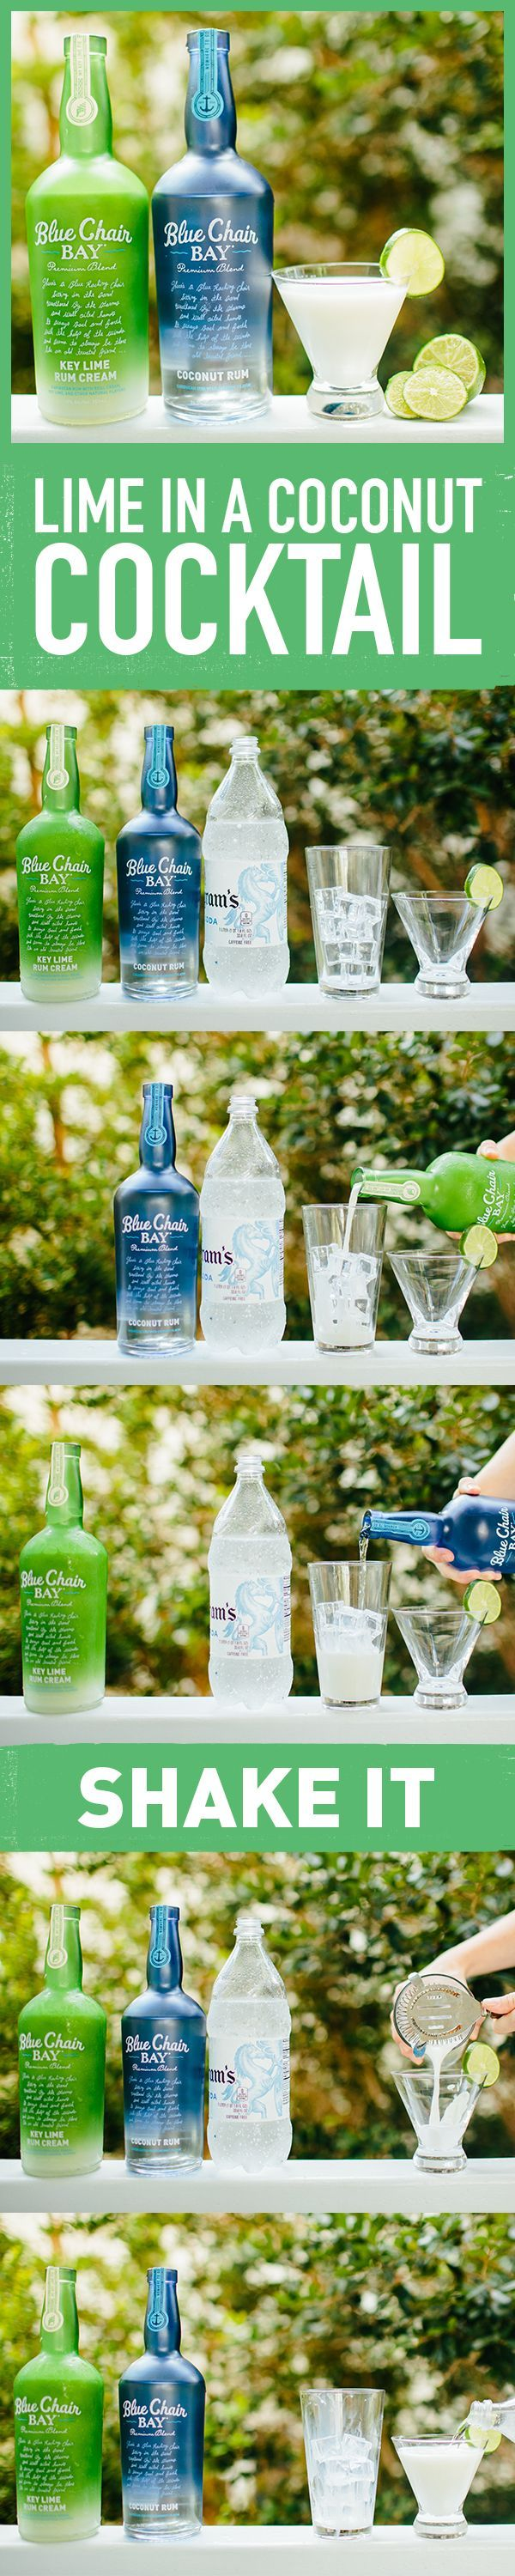 LIME IN A COCONUT COCKTAIL // 3 oz. Blue Chair Bay Key Lime Rum Cream + 1 oz. Blue Chair Bay Coconut Rum + 1 oz. club soda // Shake both rums together and double strain into martini glass. Top with club soda. #BlueChair